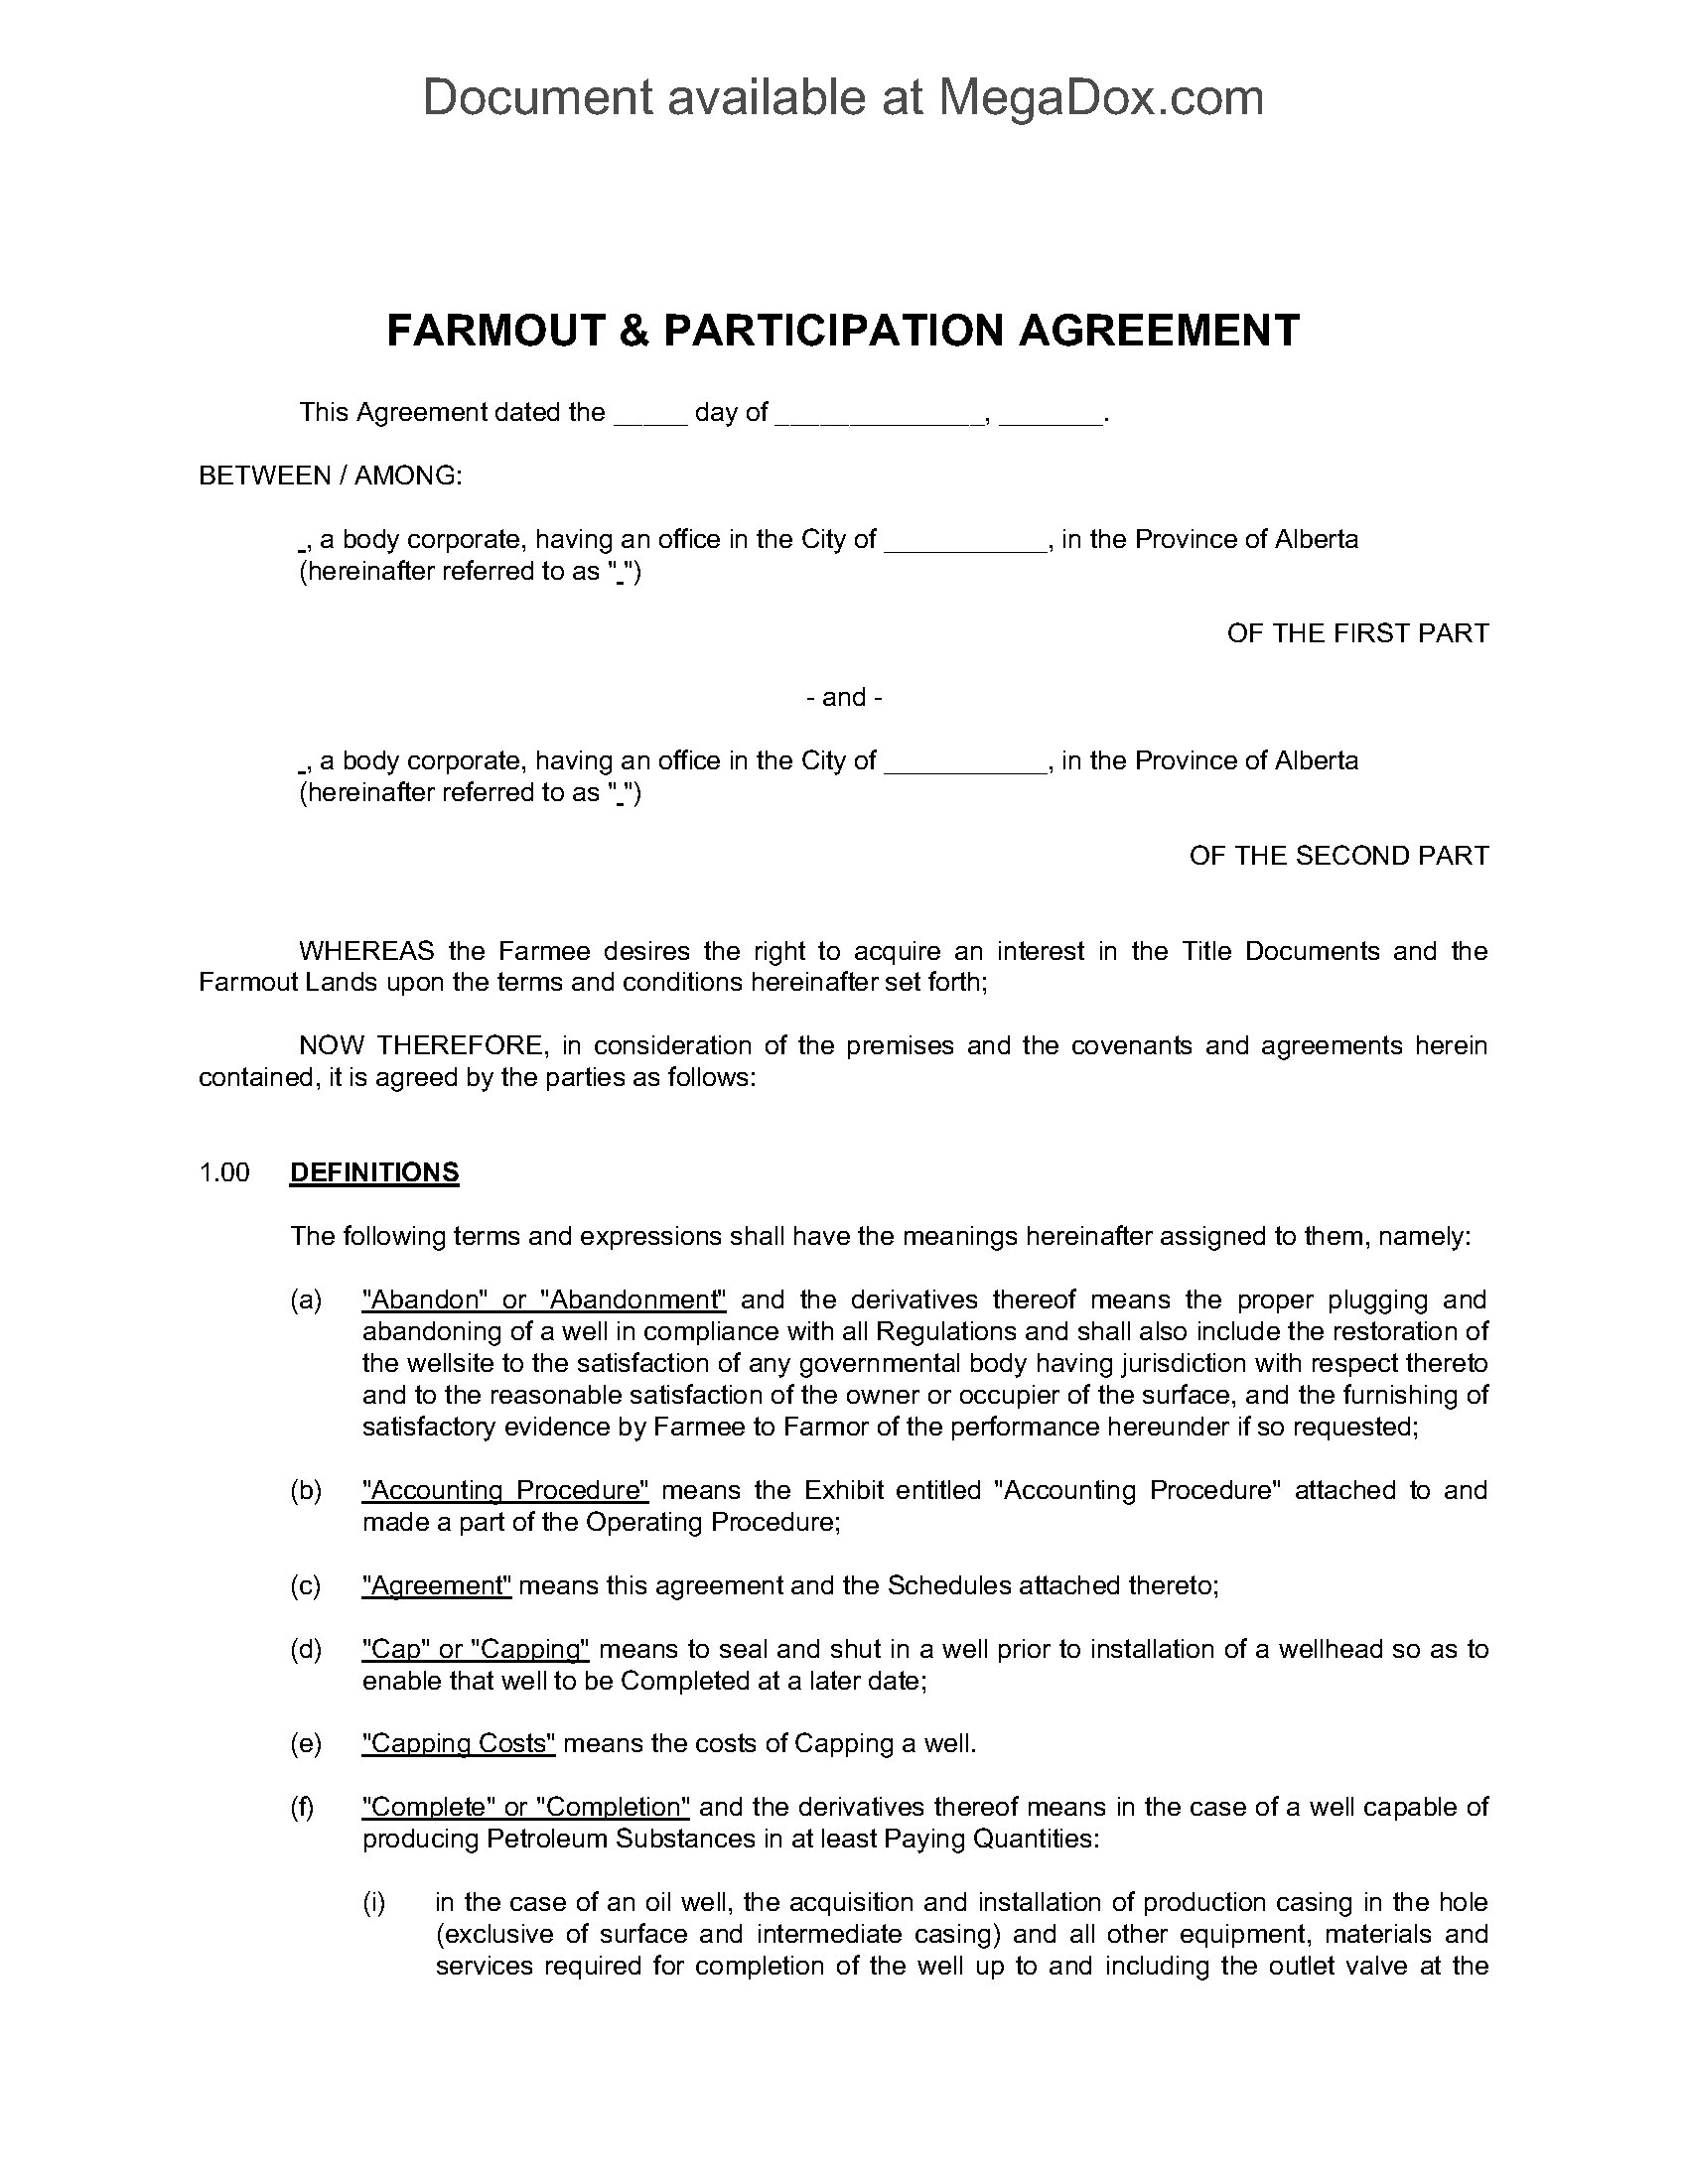 Our easily editable legal templates allow you to protect your business and subsidiaries from. Alberta Farmout And Participation Agreement Legal Forms And Business Templates Megadox Com